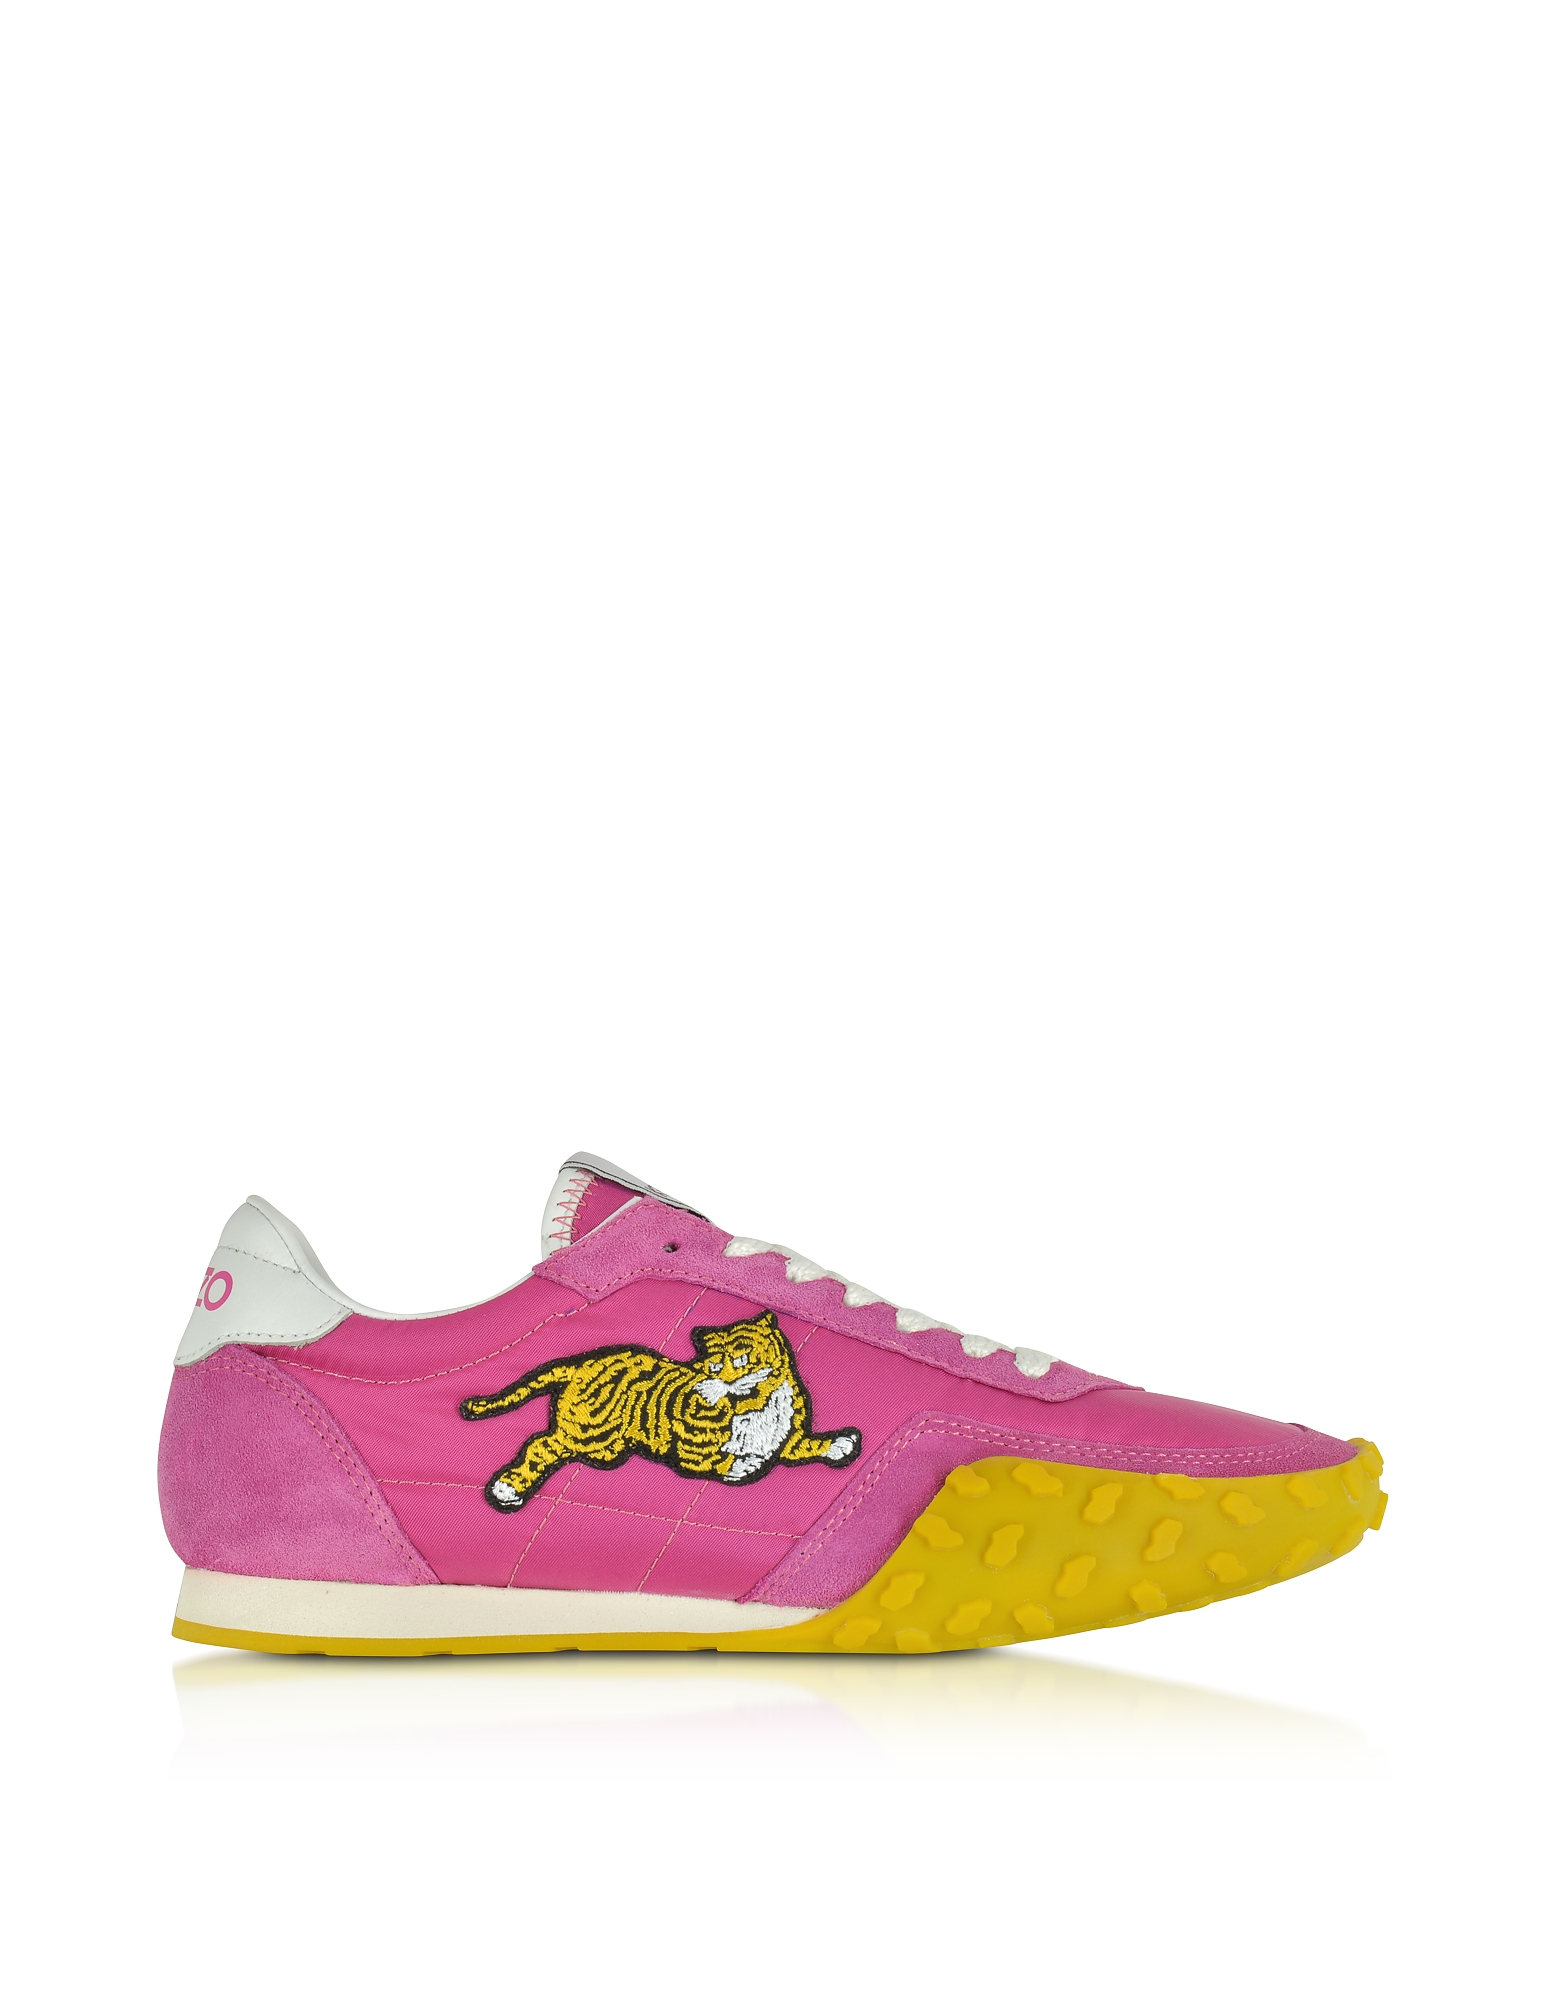 Kenzo Shoes, Move Fuchsia Nylon Memento Sneakers